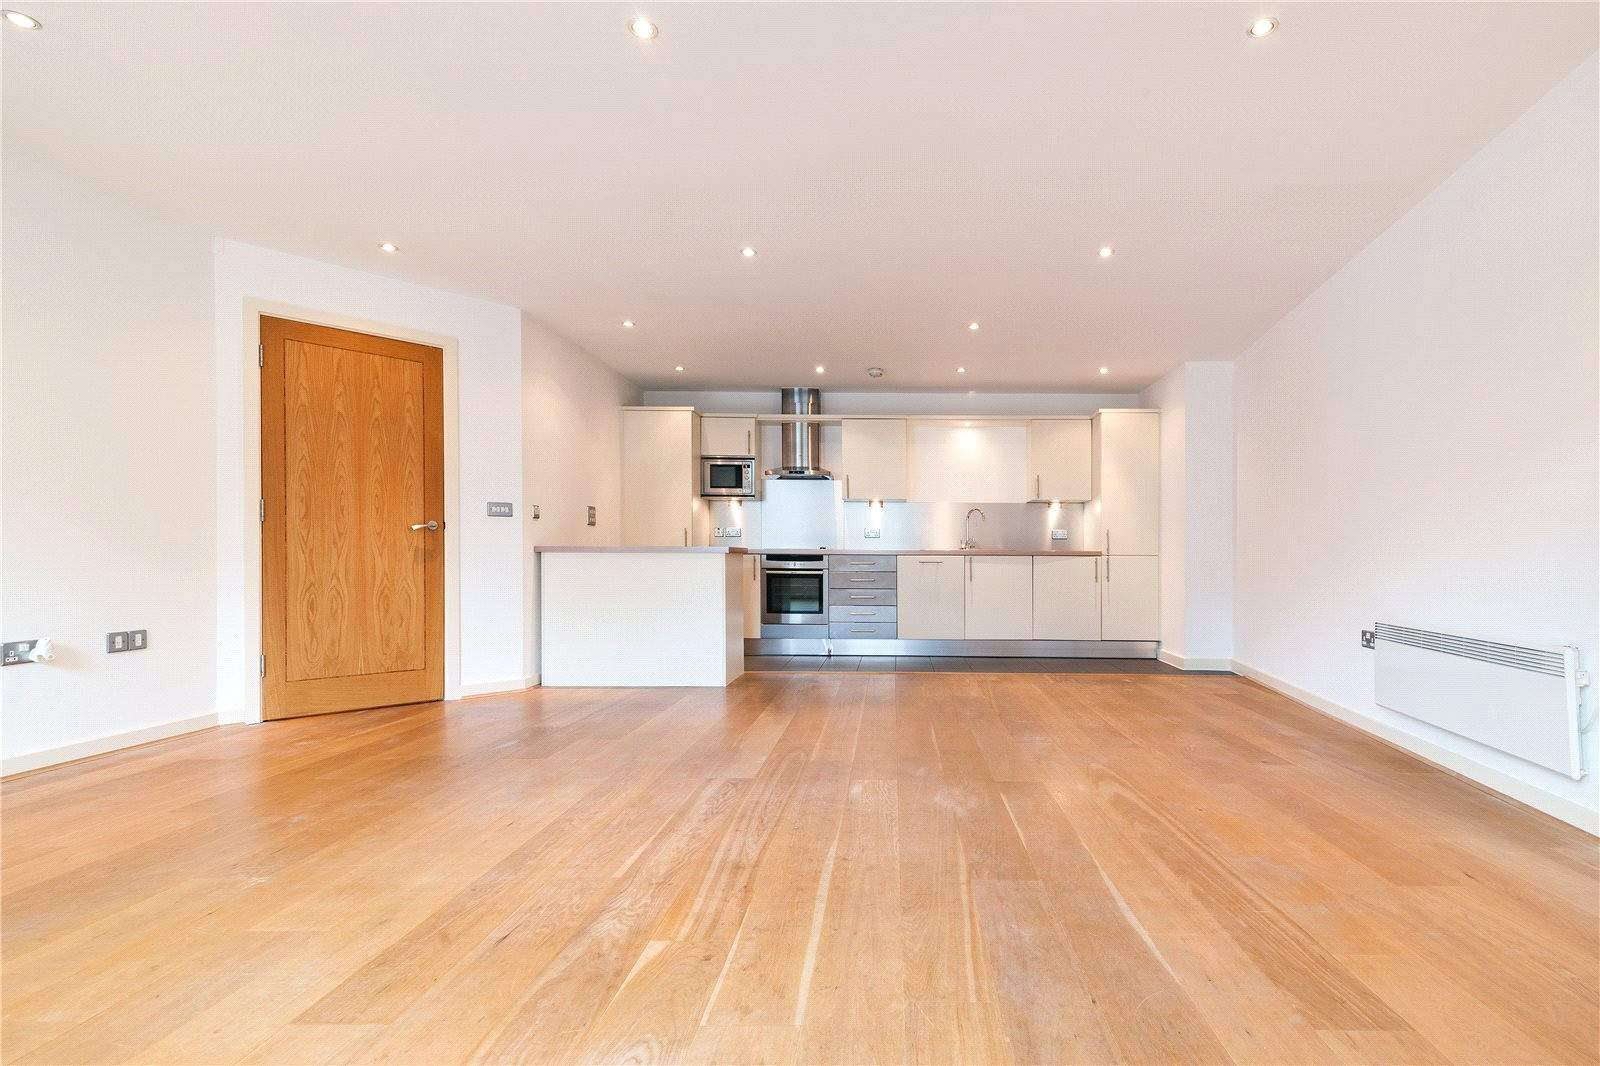 places that sell hardwood flooring of 1 bedroom property for sale in dickinson court 15 brewhouse yard throughout 1 bedroom property for sale in dickinson court 15 brewhouse yard london ec1v